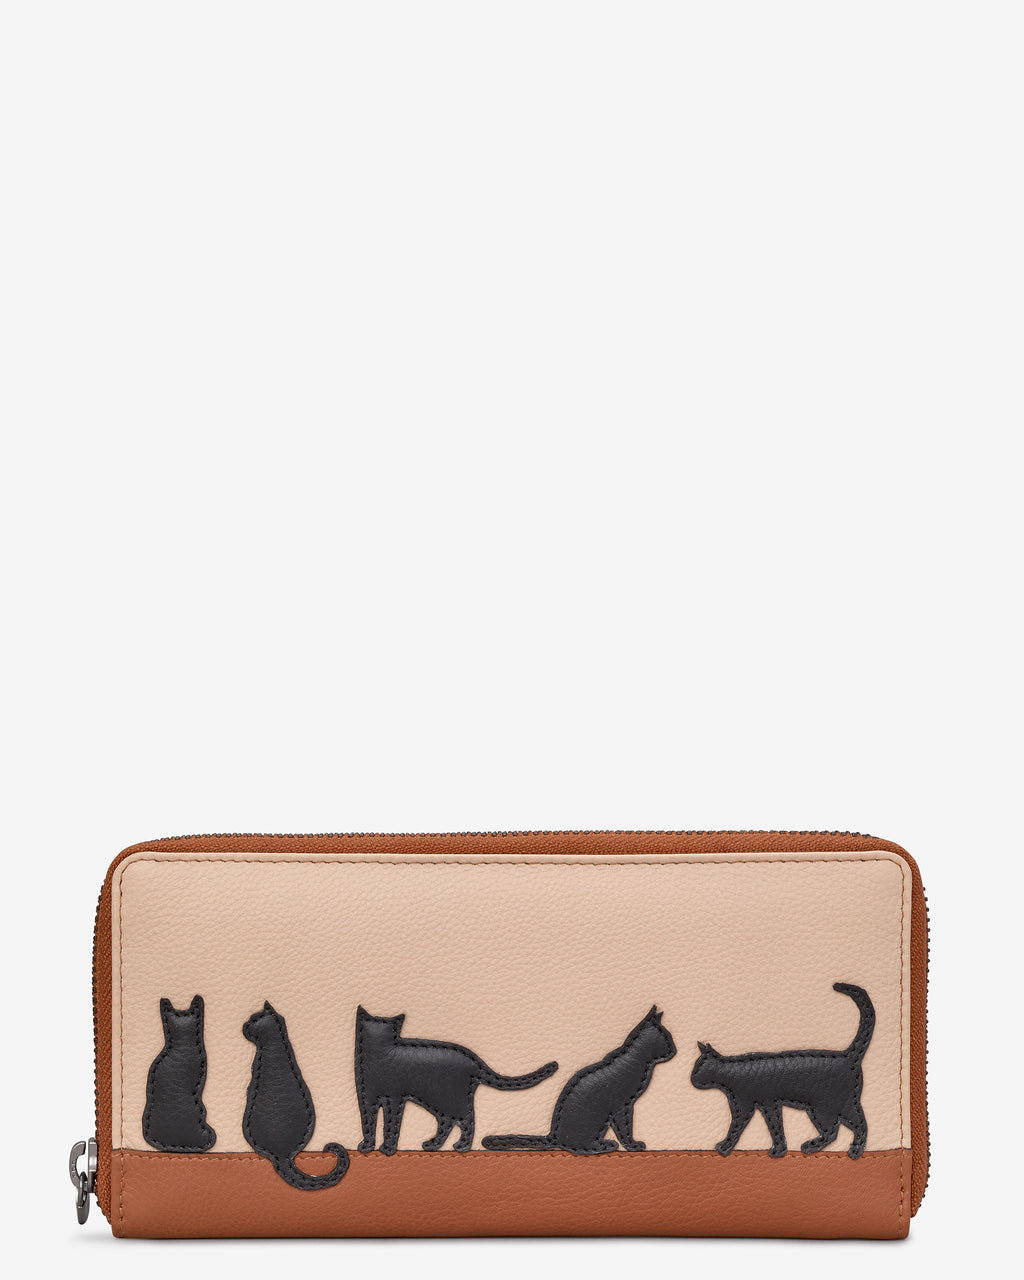 Clowder of Cats Zip Round Leather Purse